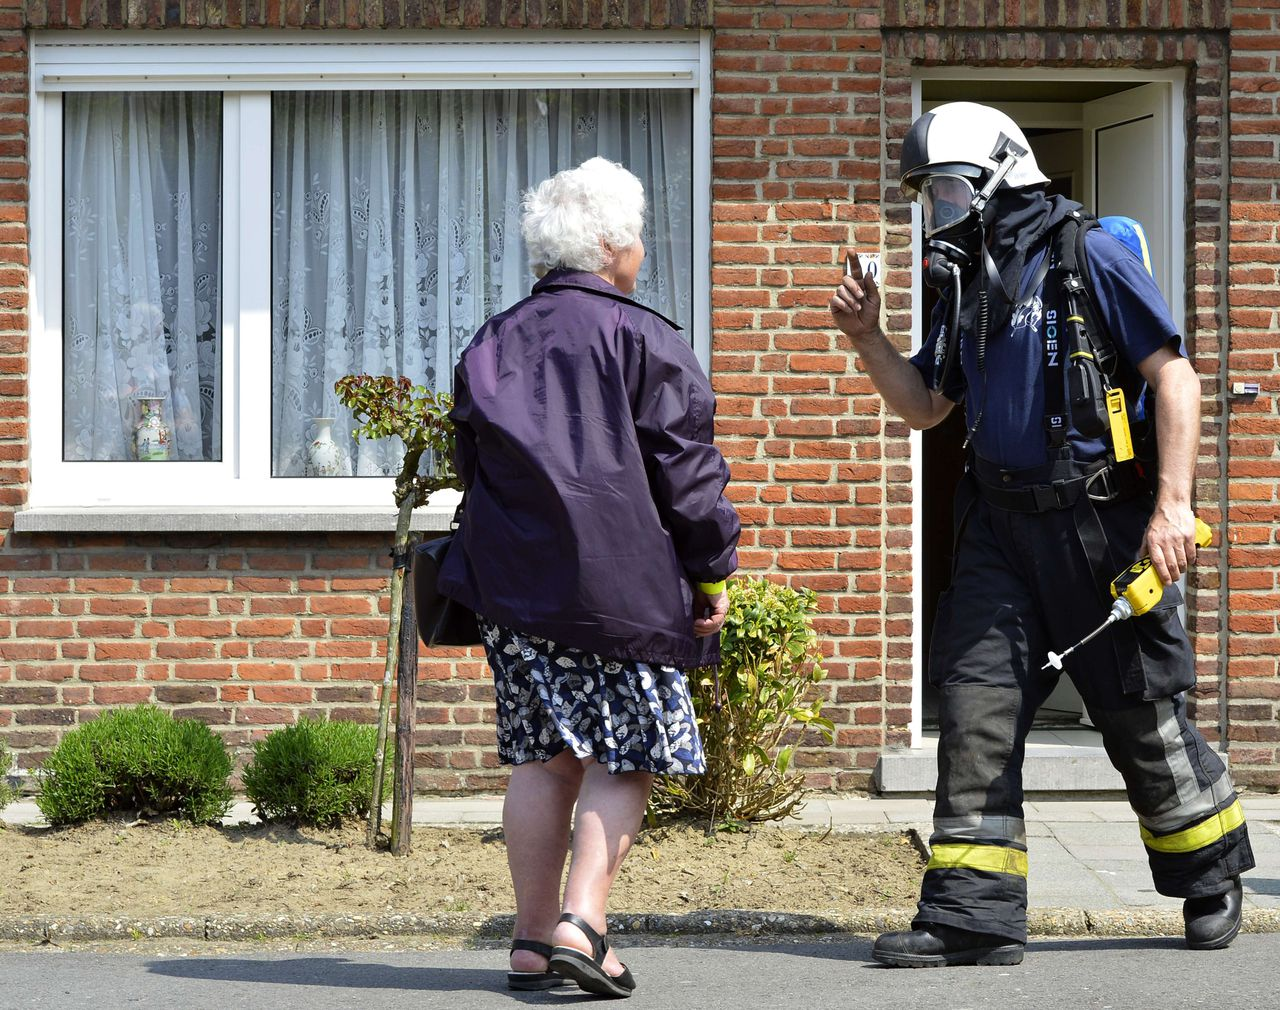 A woman talks to a toxic specialist to check if her house is free from toxins, in Wetteren, on May 6, 2013. On Saturday night a freight train derailed and exploded on a track near Schellebelle (part of Wichelen, Wetteren). The train contained the chemical product acrylonitrile, a toxic and inflammable fluid that can cause breathing problems. Emergency services evacuated some 500 residents. One local resident died and 49 persons were brought to hospital. AFP PHOTO/ BENOIT DOPPAGNE